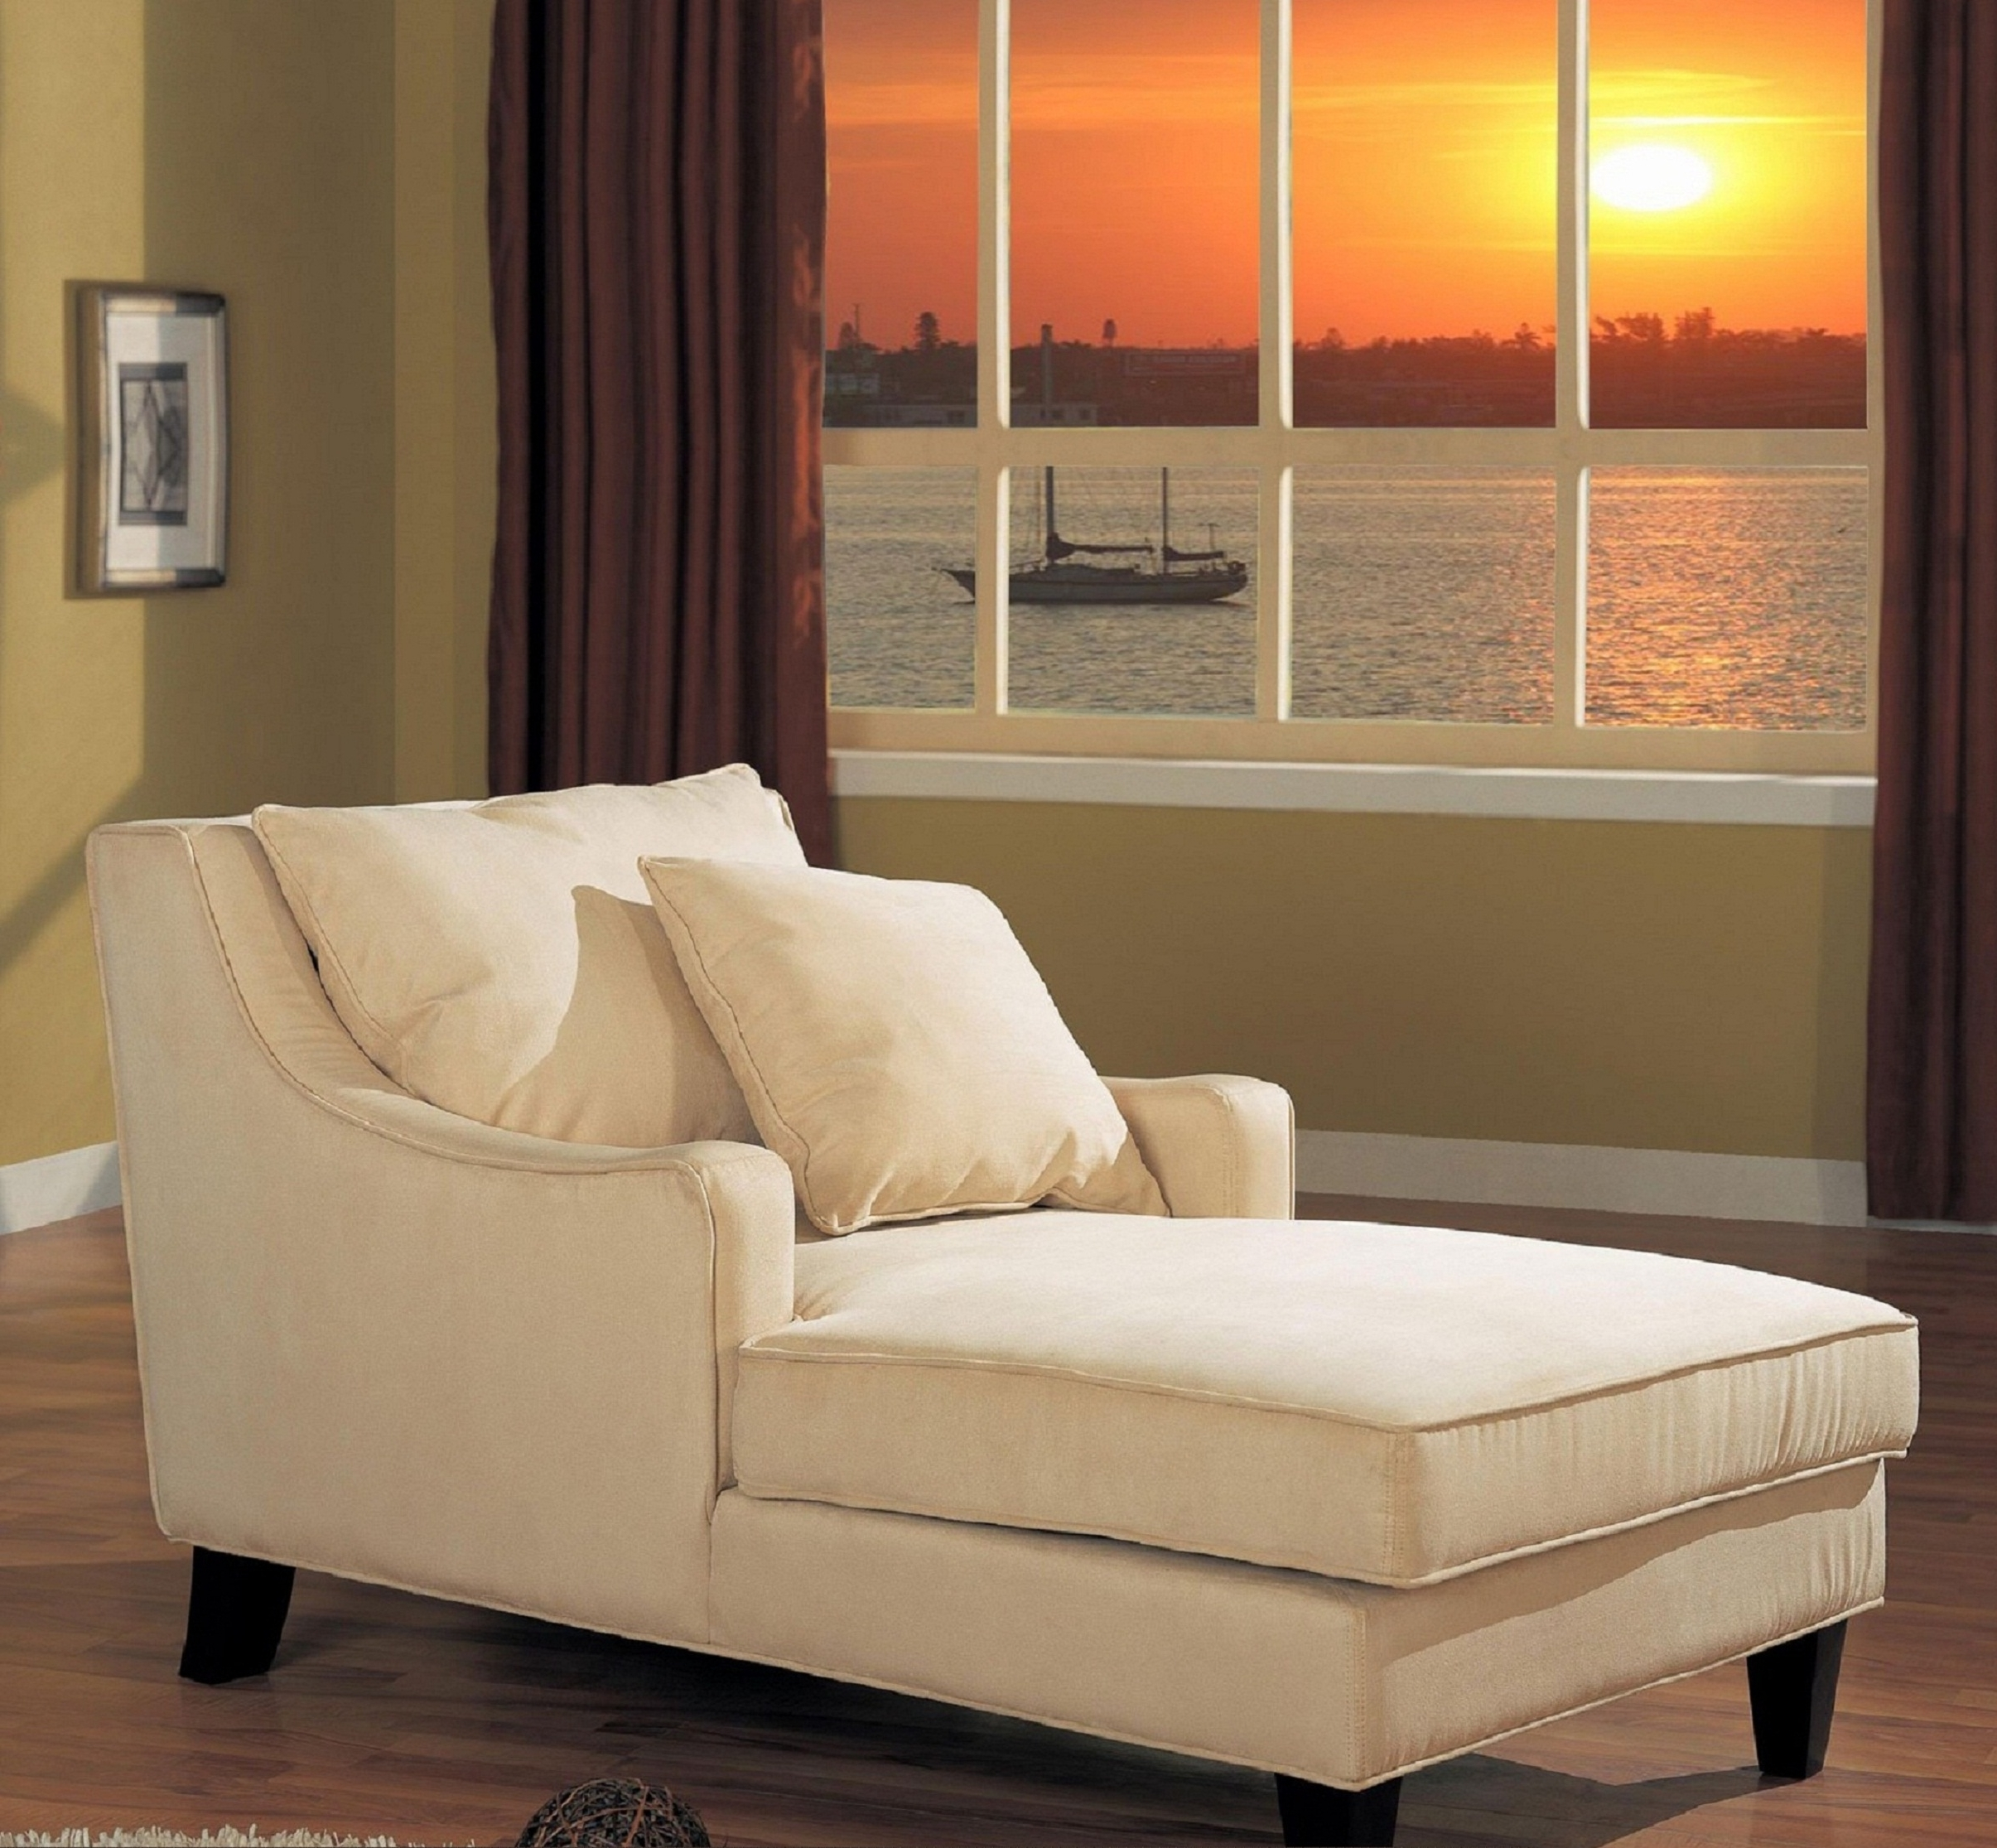 Wide Beige Upholstered Chaise Lounge With Arm And Cushion Having For Current Wide Chaise Lounges (View 12 of 15)